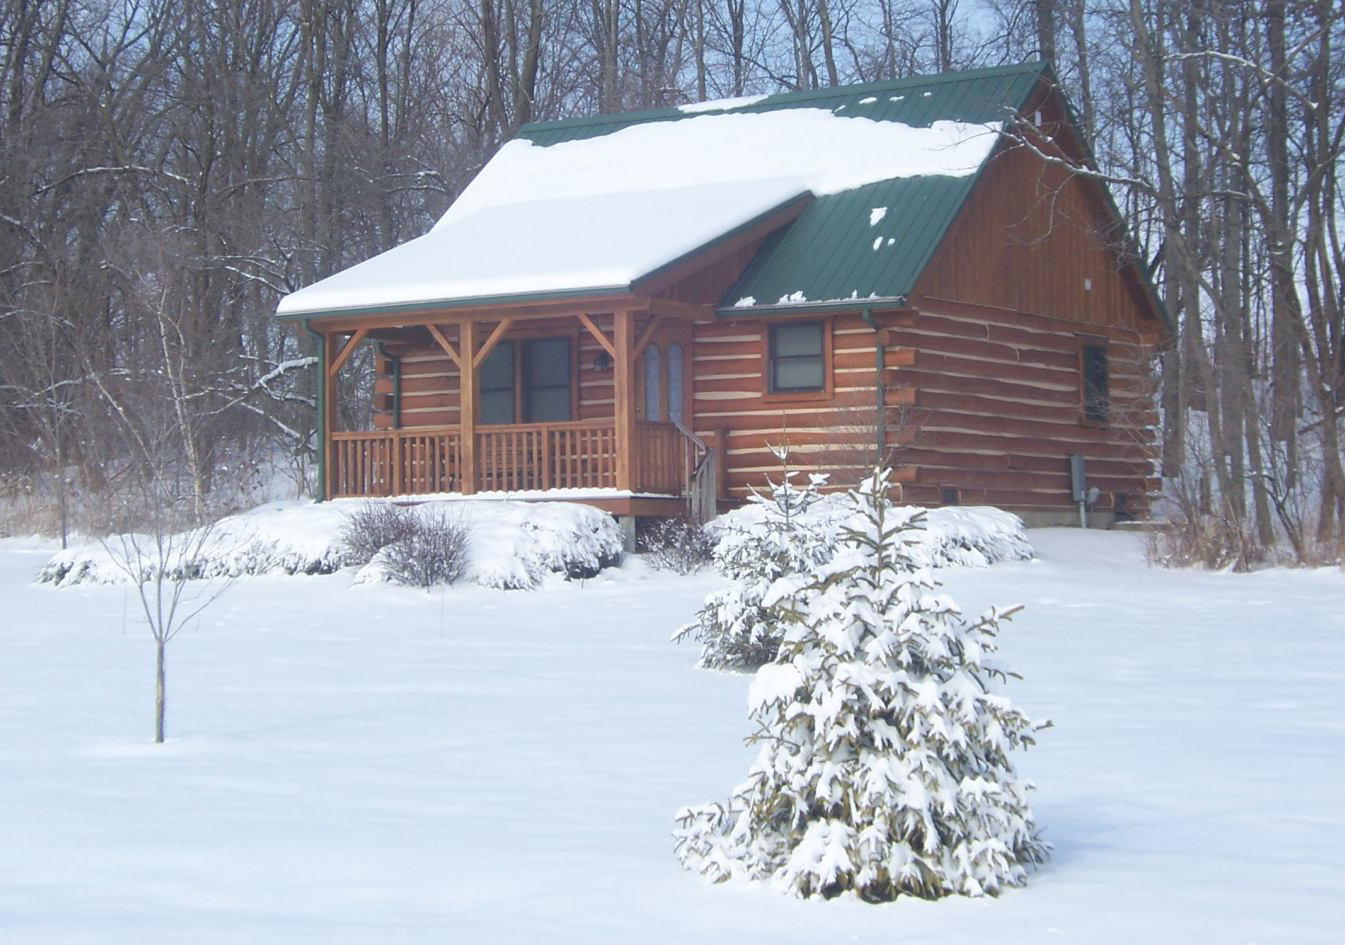 Winter at Cabins & Candlelight